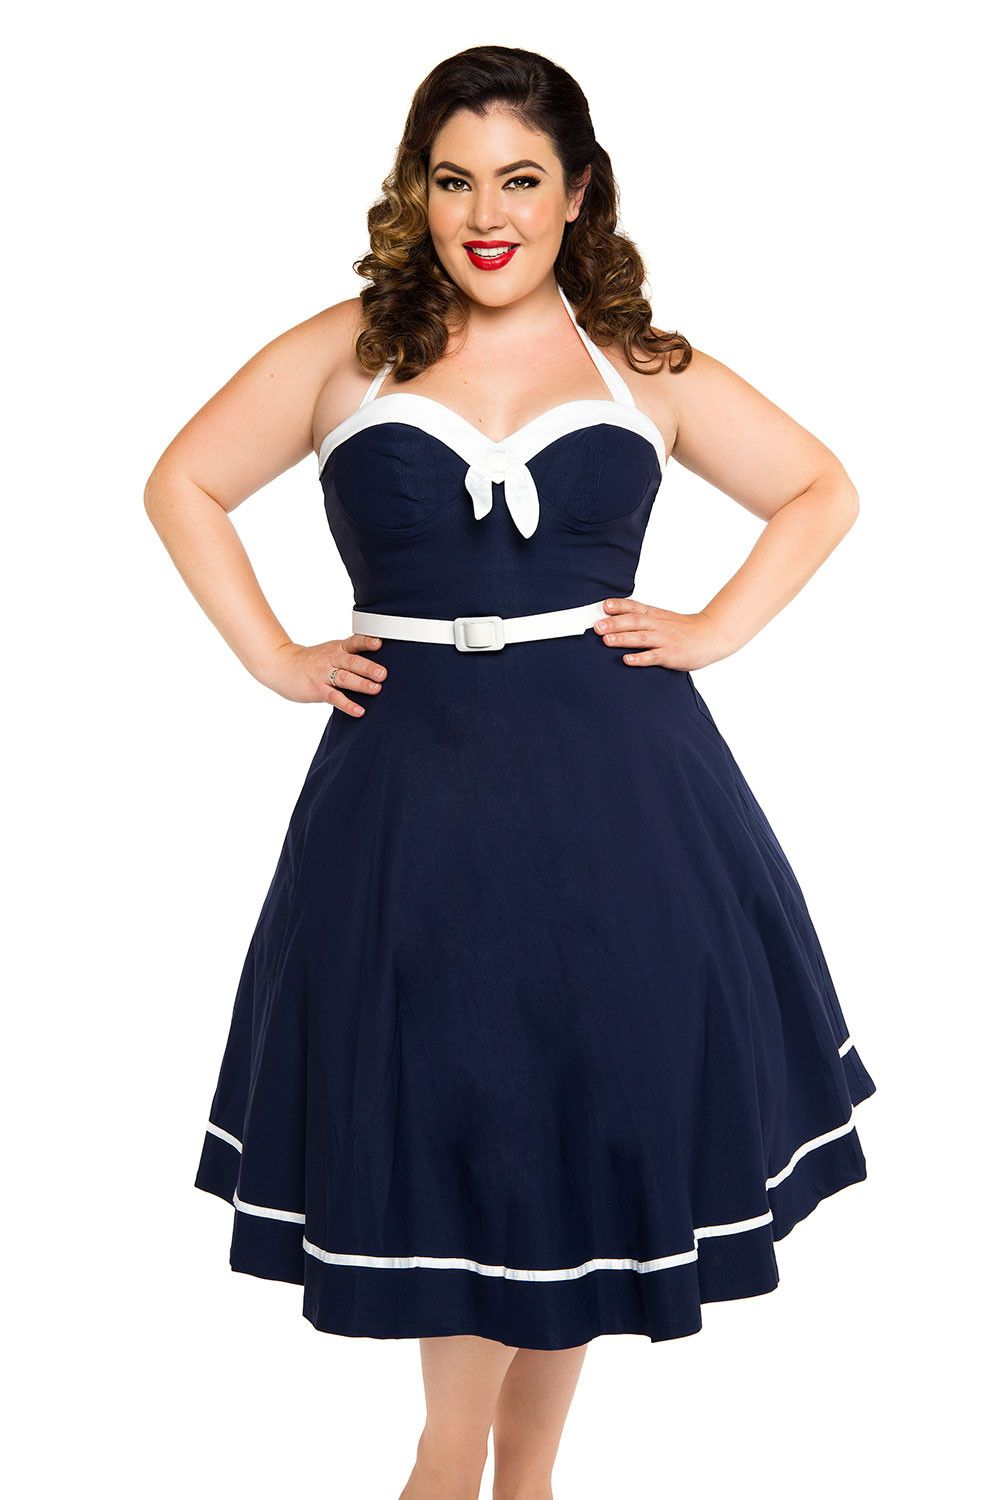 Pinup Couture Sailor Swing Dress In Navy Plus Size Pinup Girl